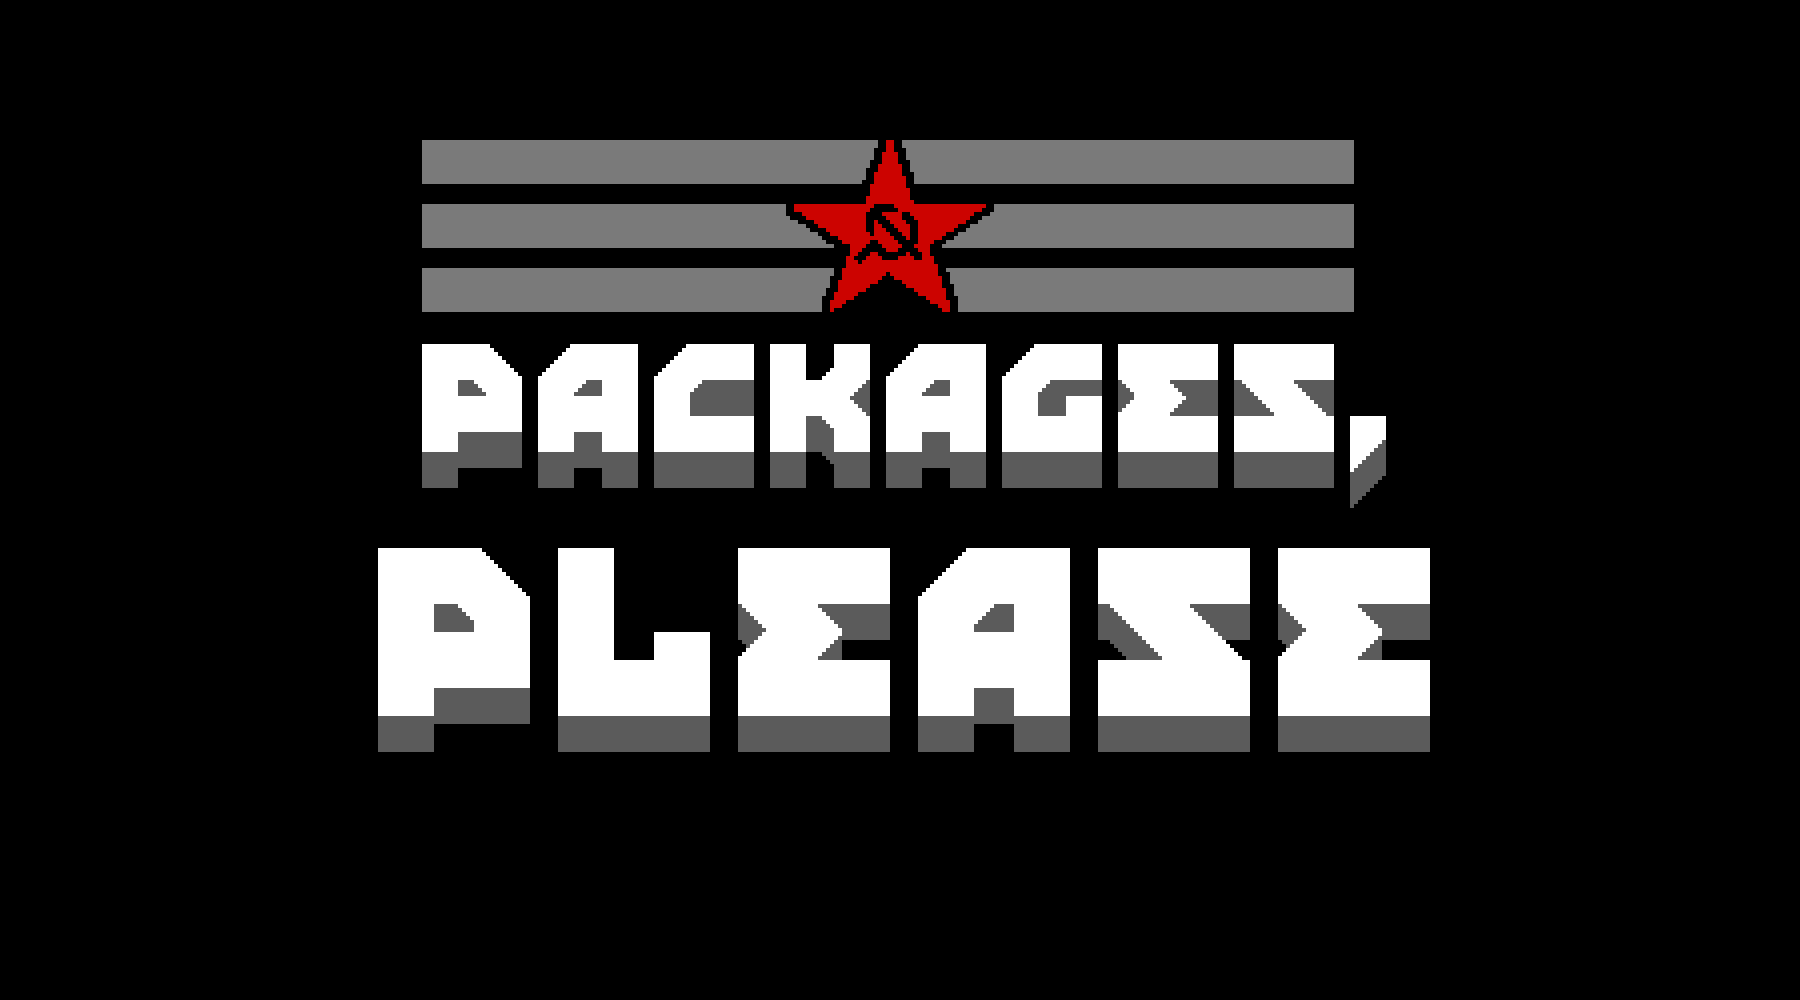 Packages, please